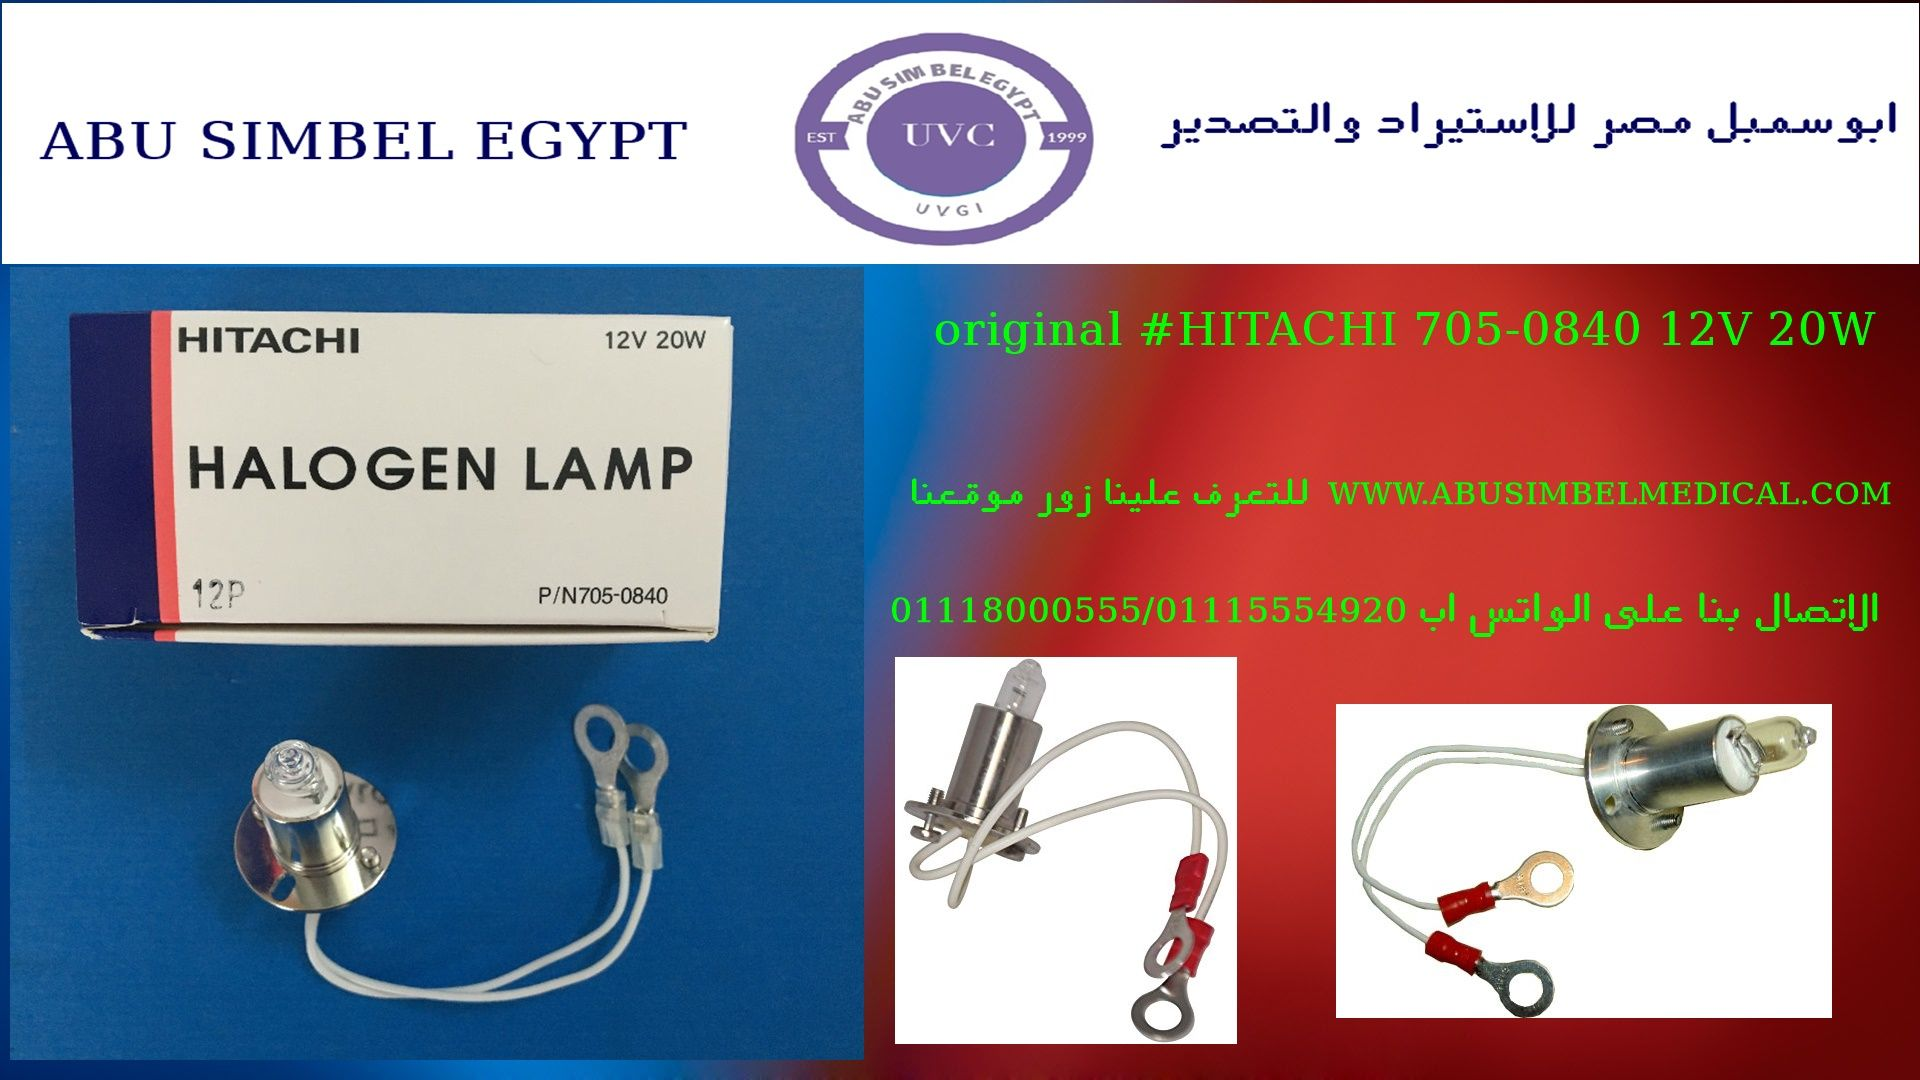 Pin By Mohamed Hamed On Medical Lamps Halogen Lamp Medical Egypt